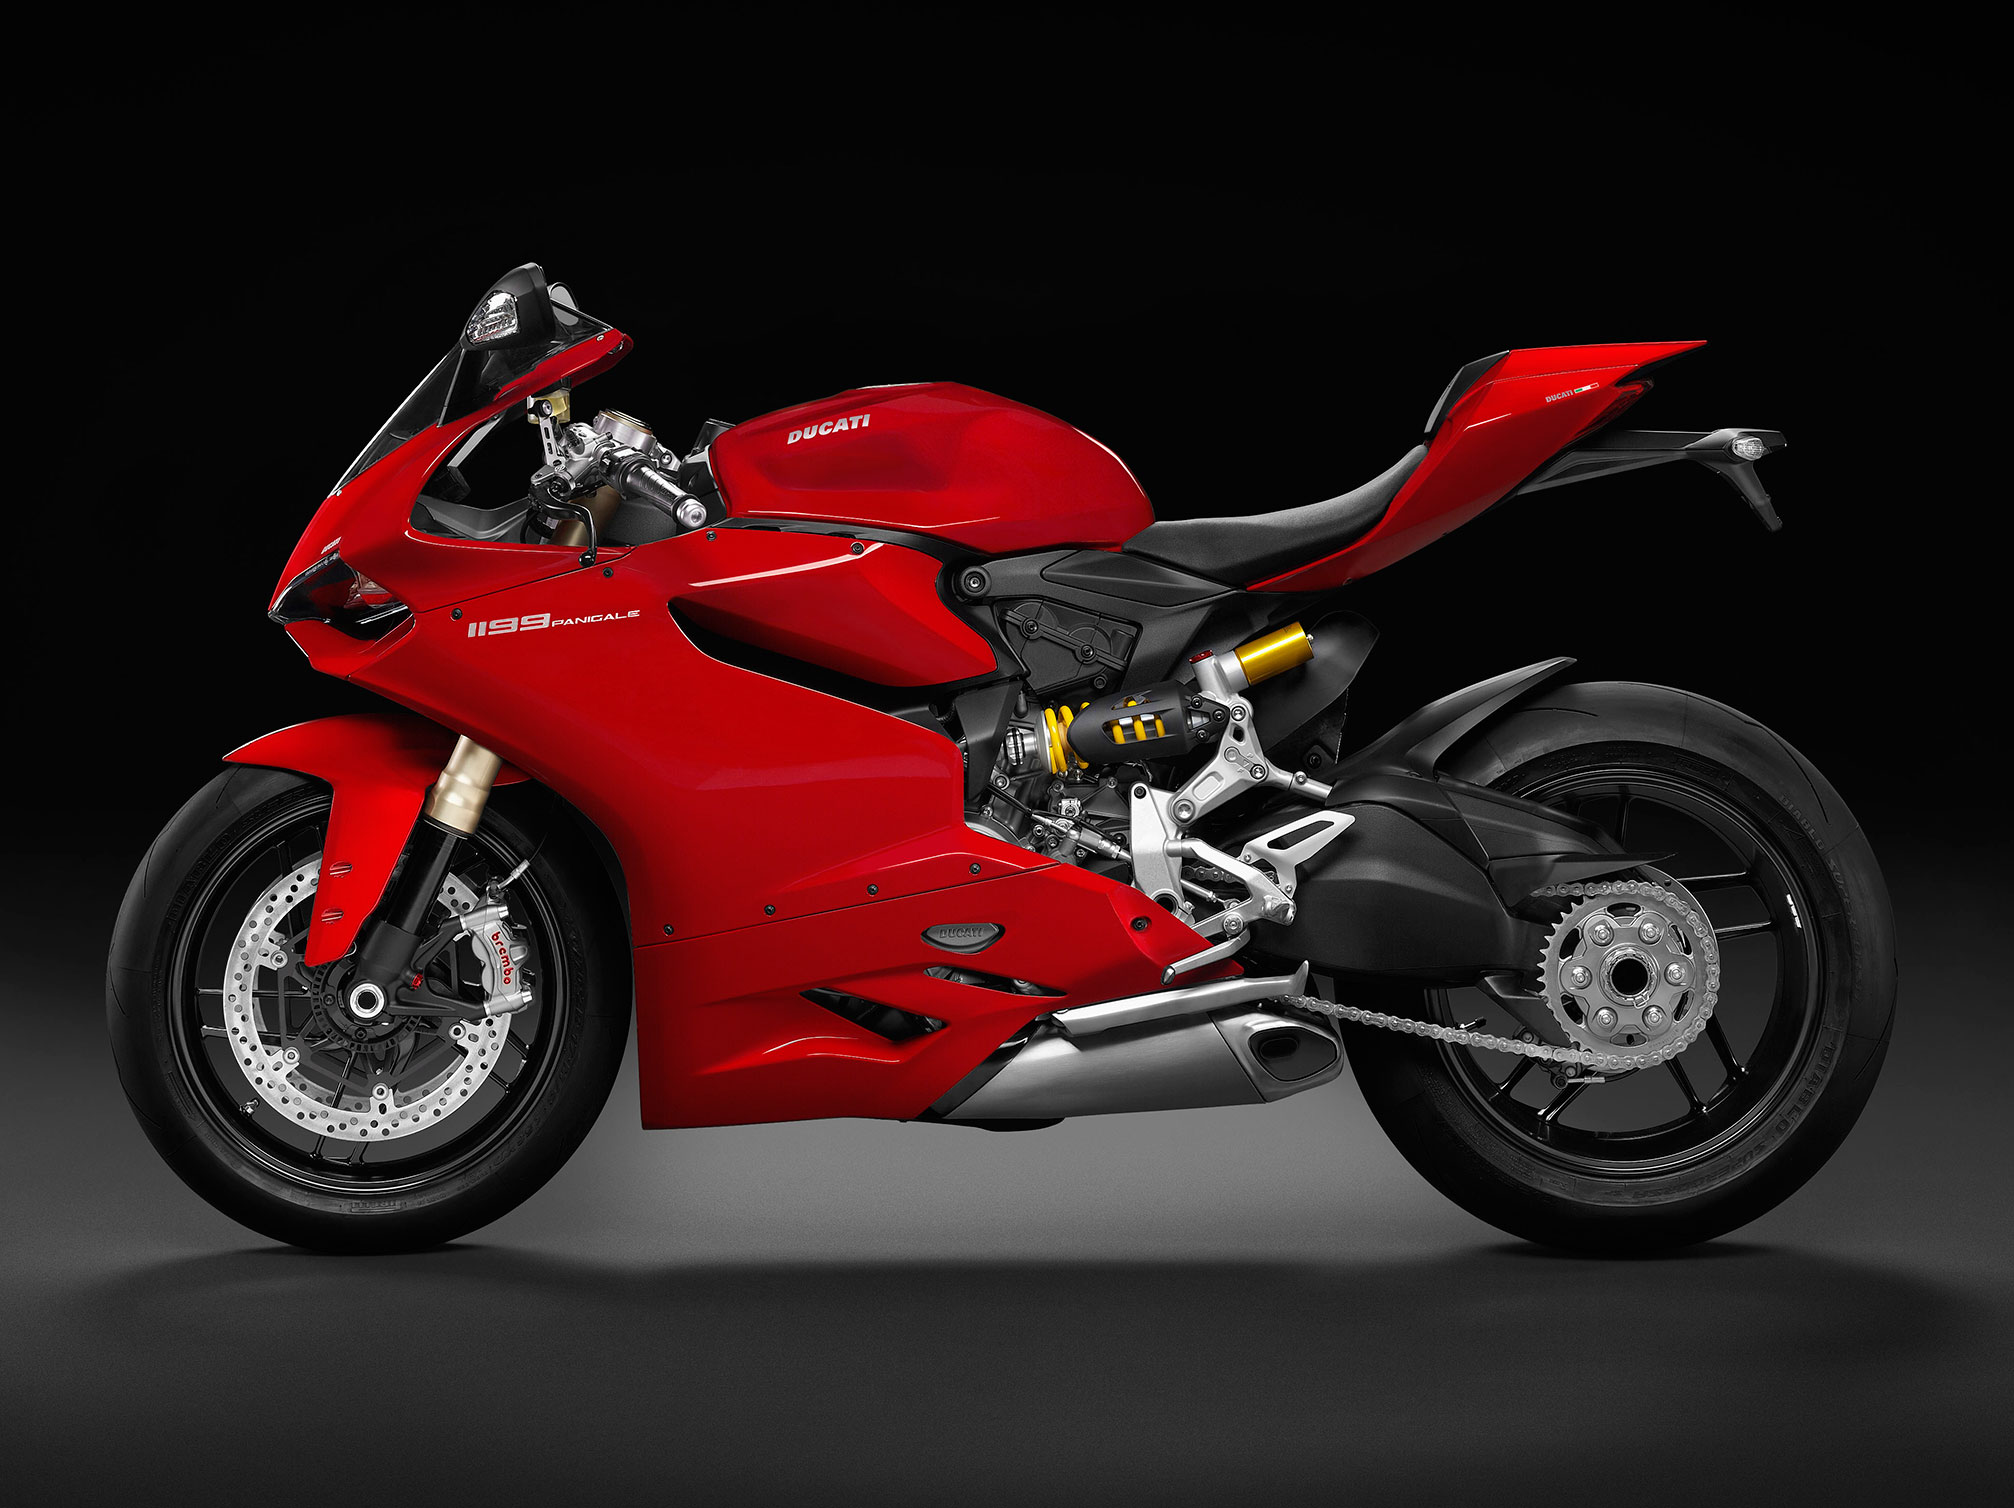 Ducati Superbike 1199 Panigale S wallpapers #13380